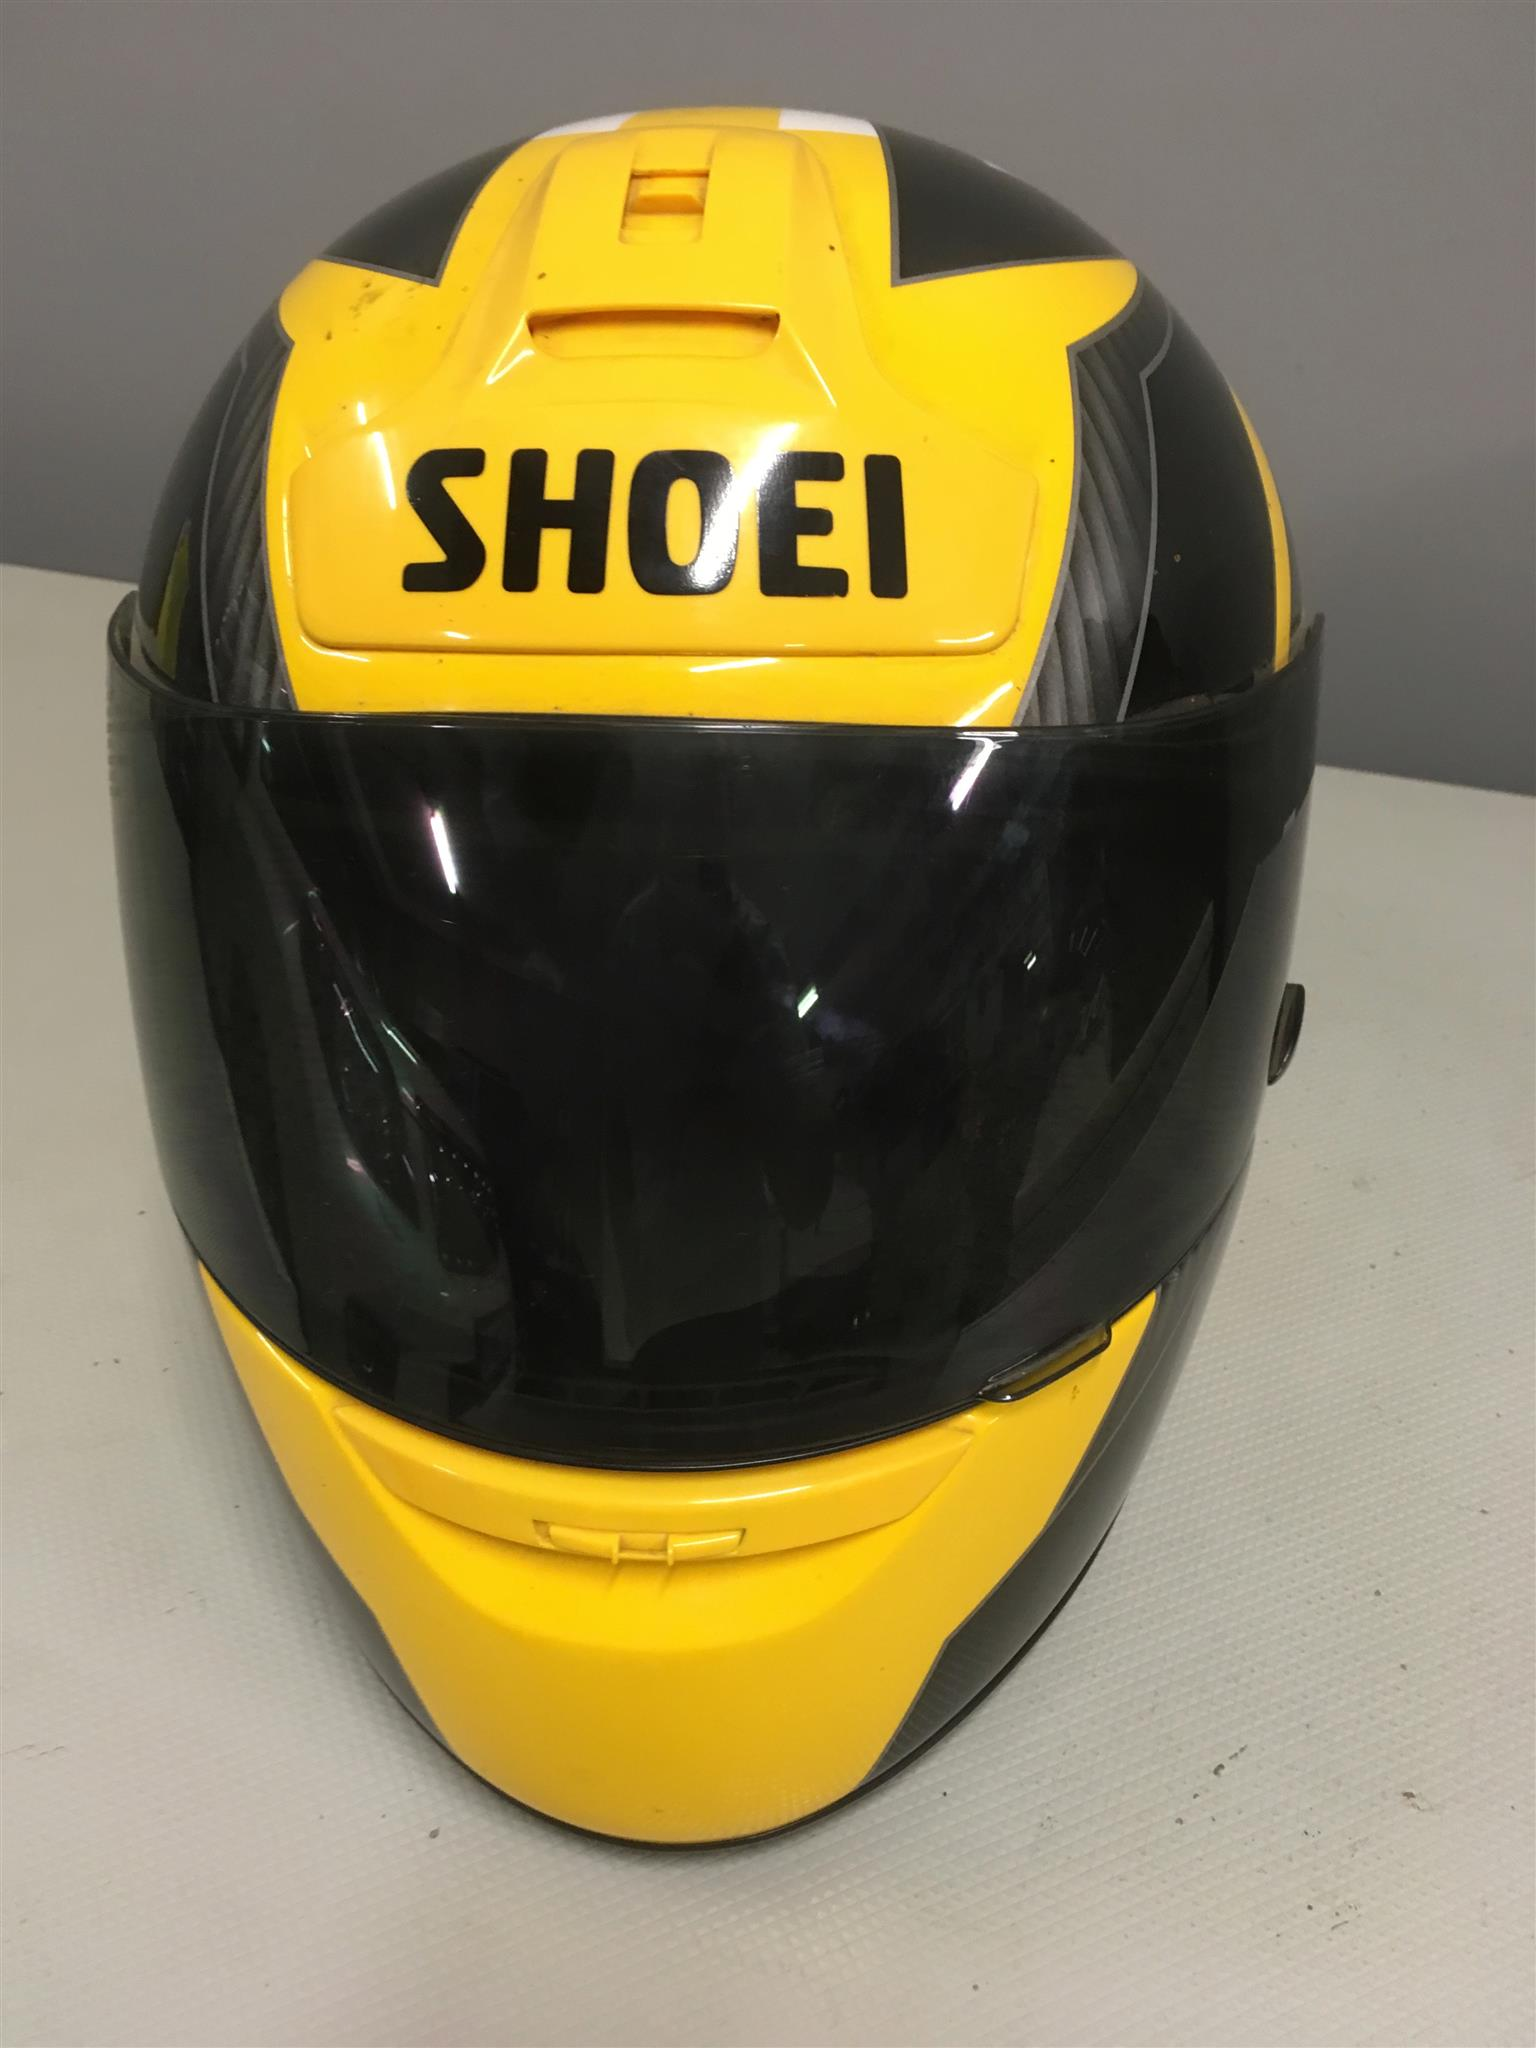 SHOEI HElmet Large size in bright yellow , in great condition, still like new.